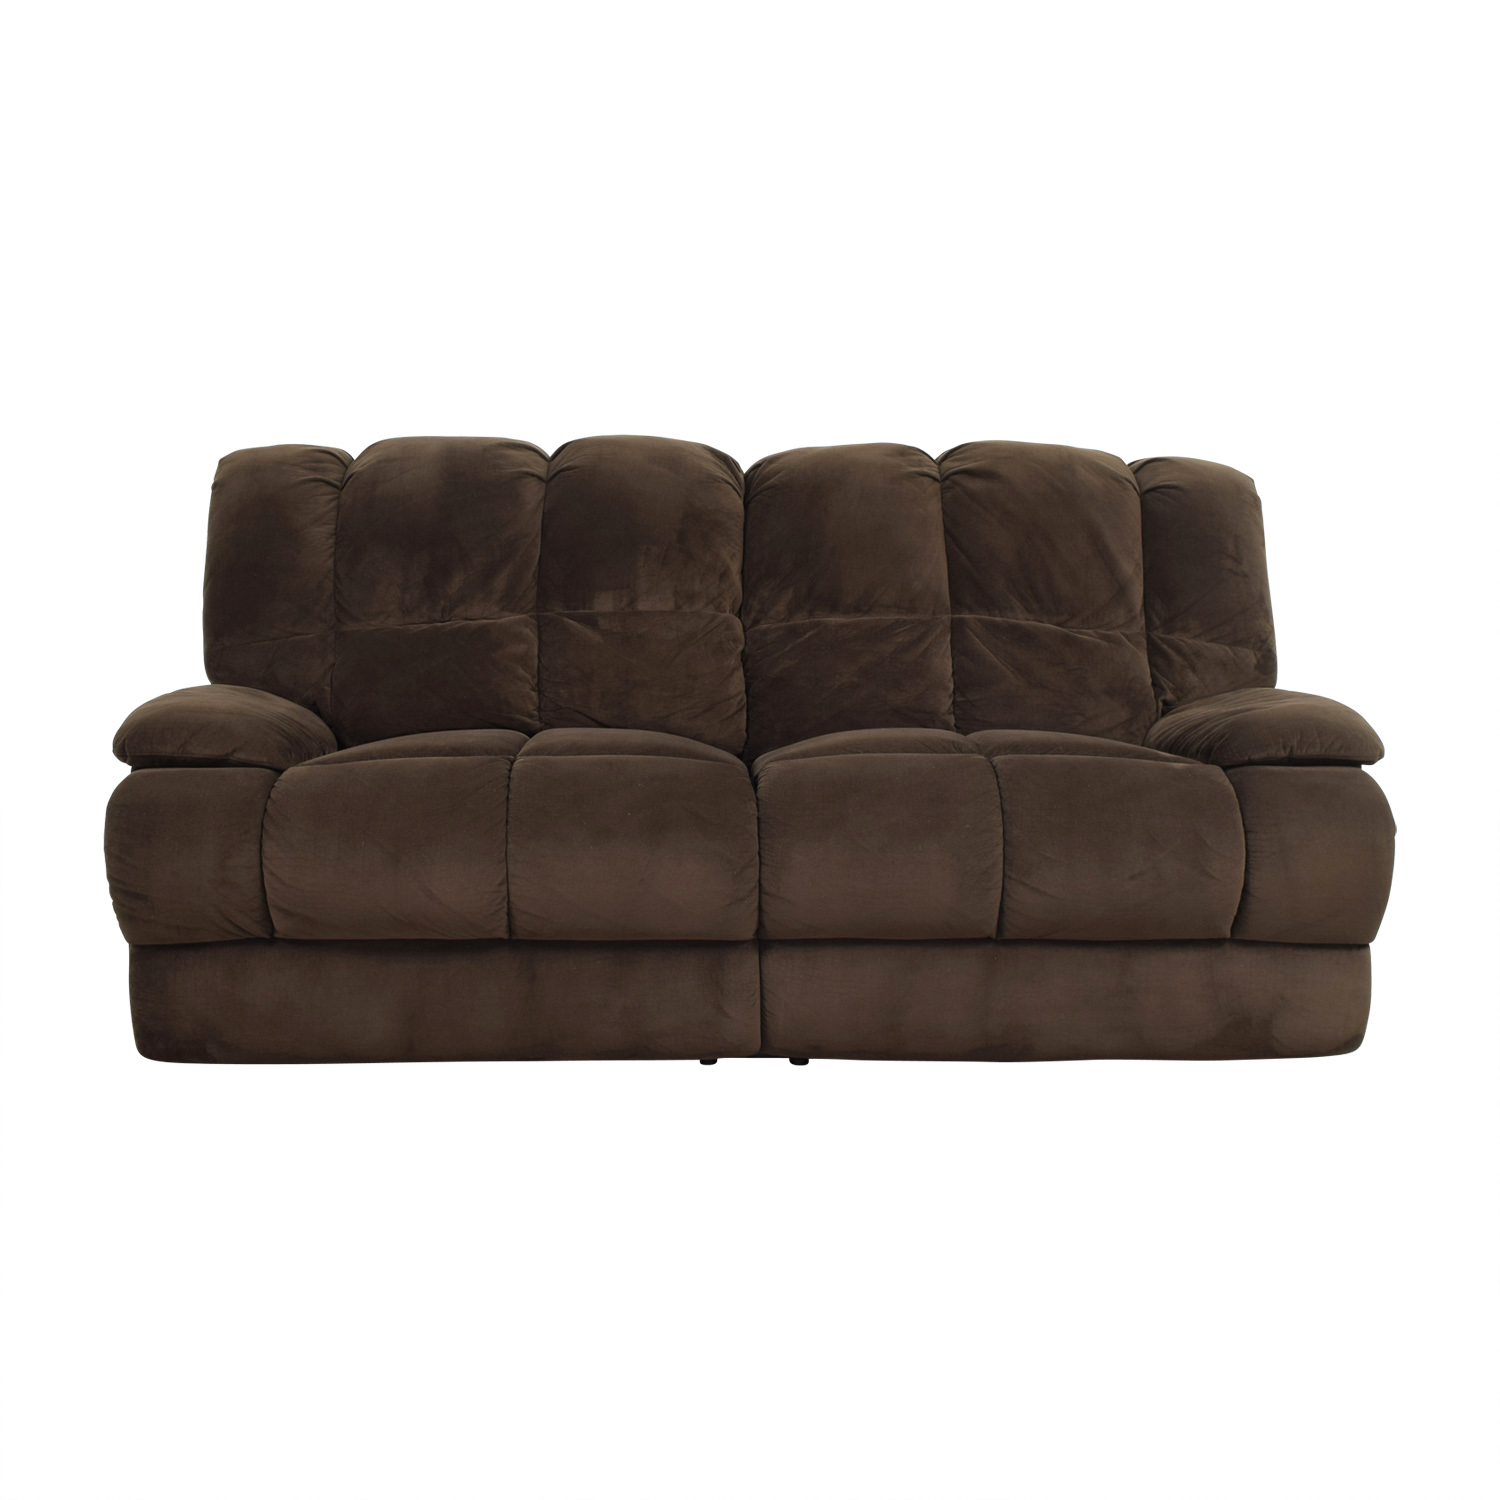 American Signature Furniture American Signature Furniture Brown Recliner Sofa Recliners